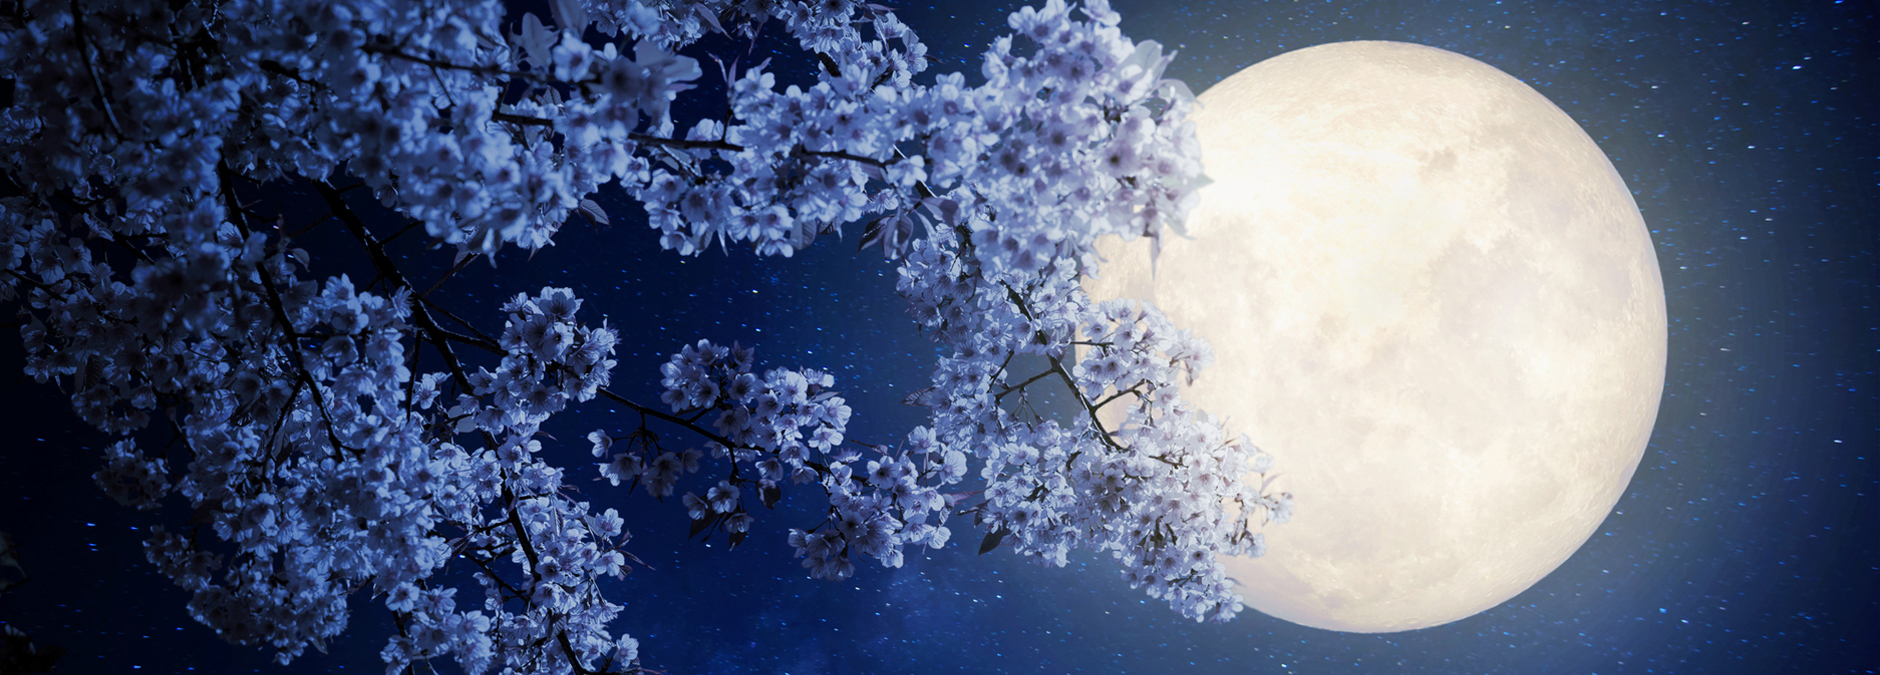 May's Full Flower Moonimage preview